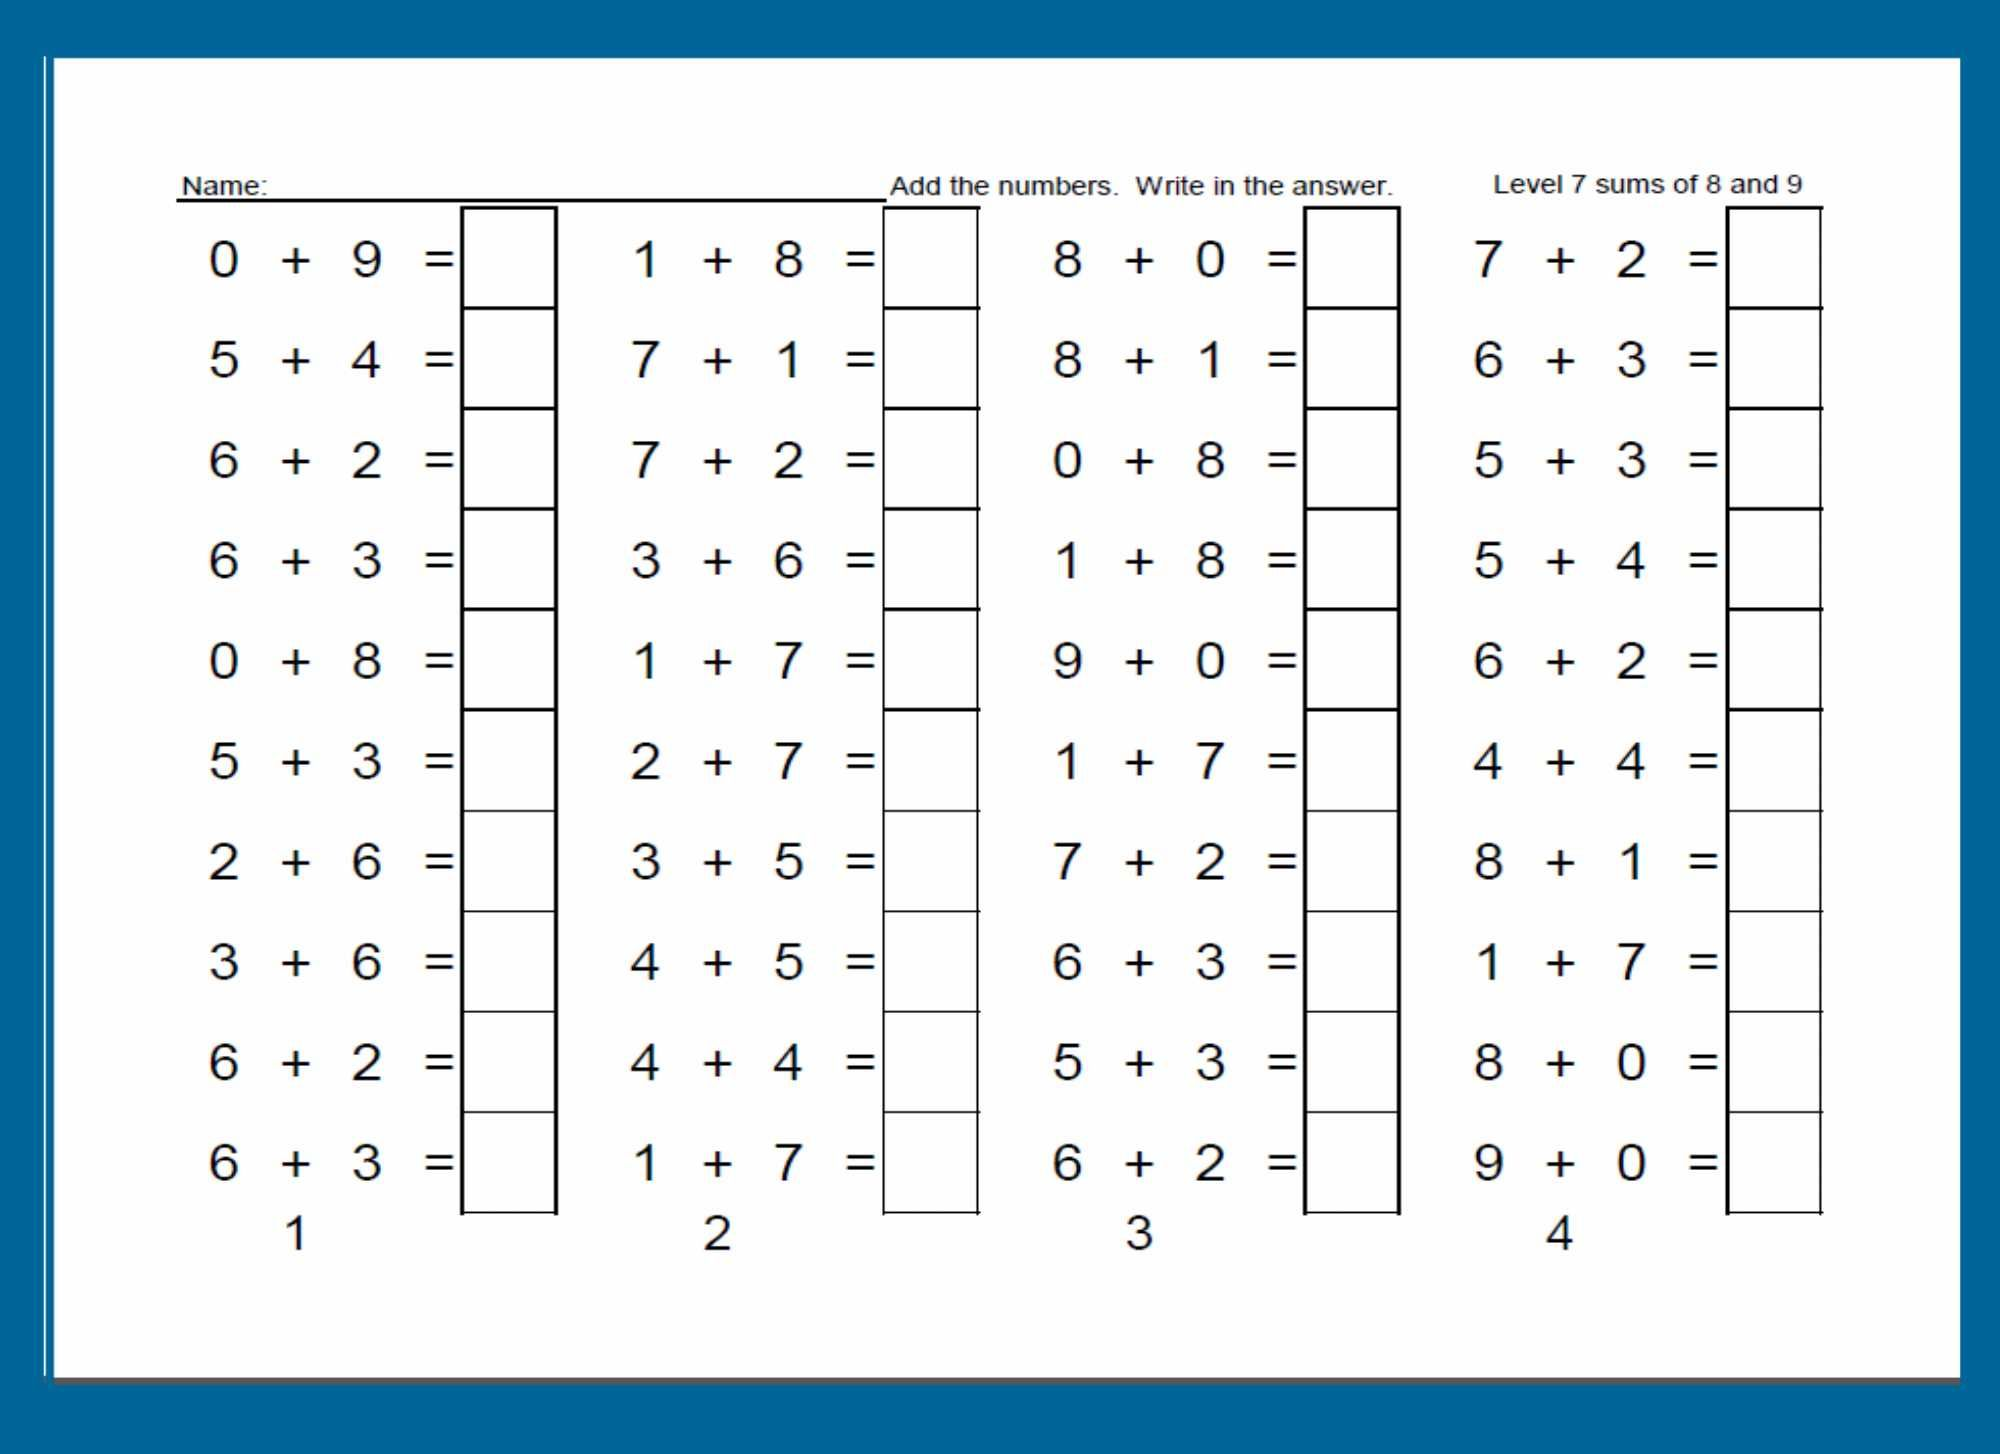 Worksheet For Developing Addition Fluency For Kindergarten